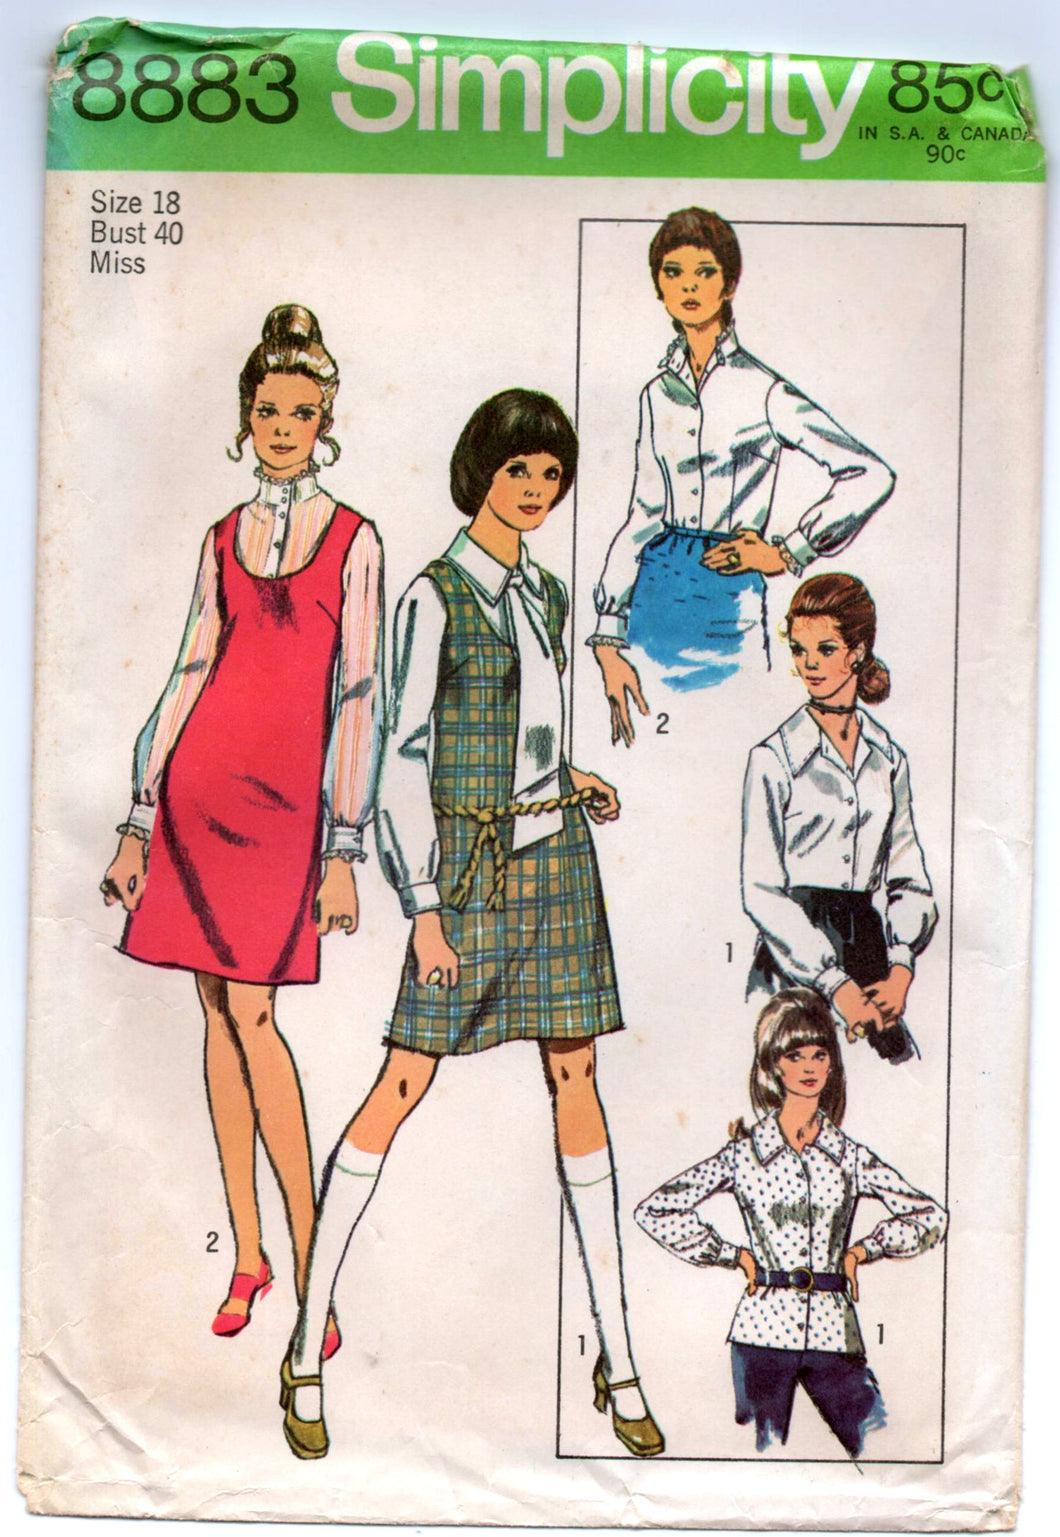 1970's Simplicity Jumper, Blouse and Tie Pattern - Bust 40